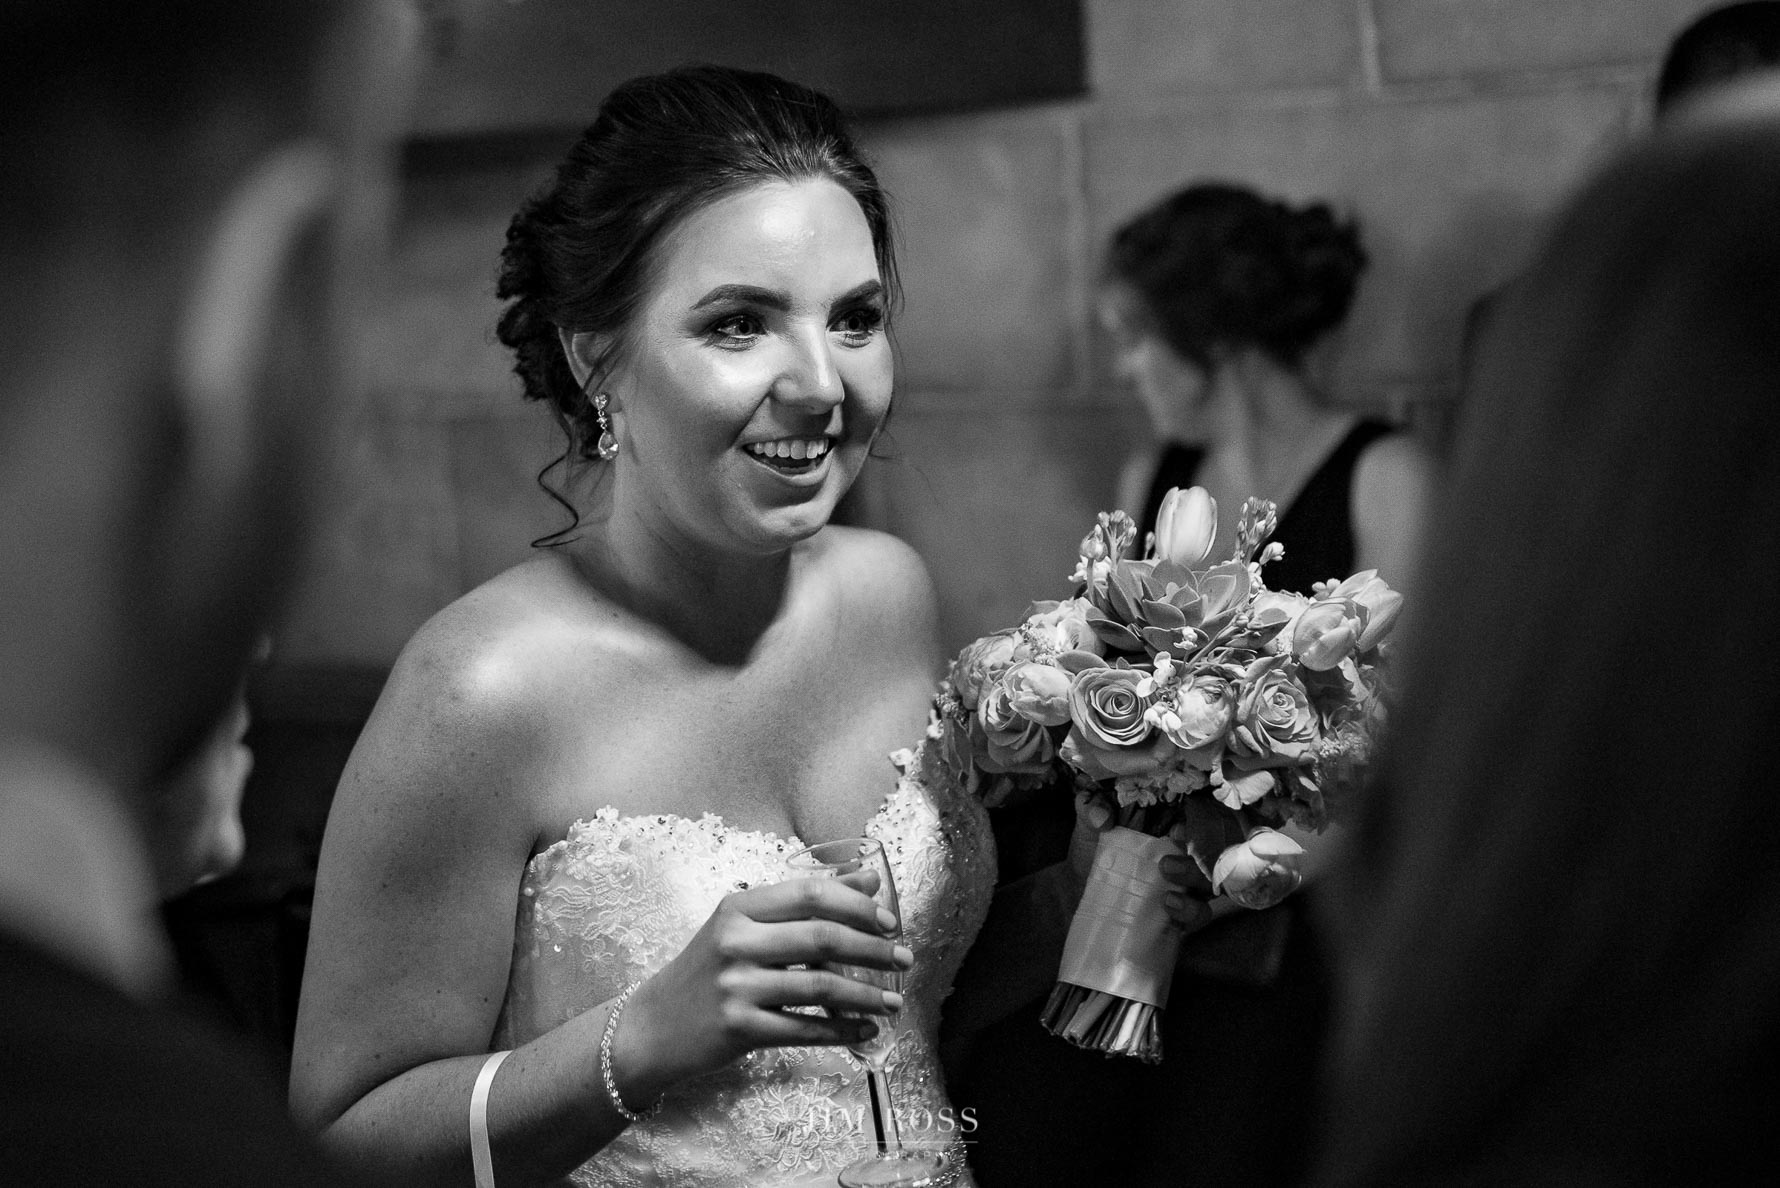 Bride arrives to greet guests